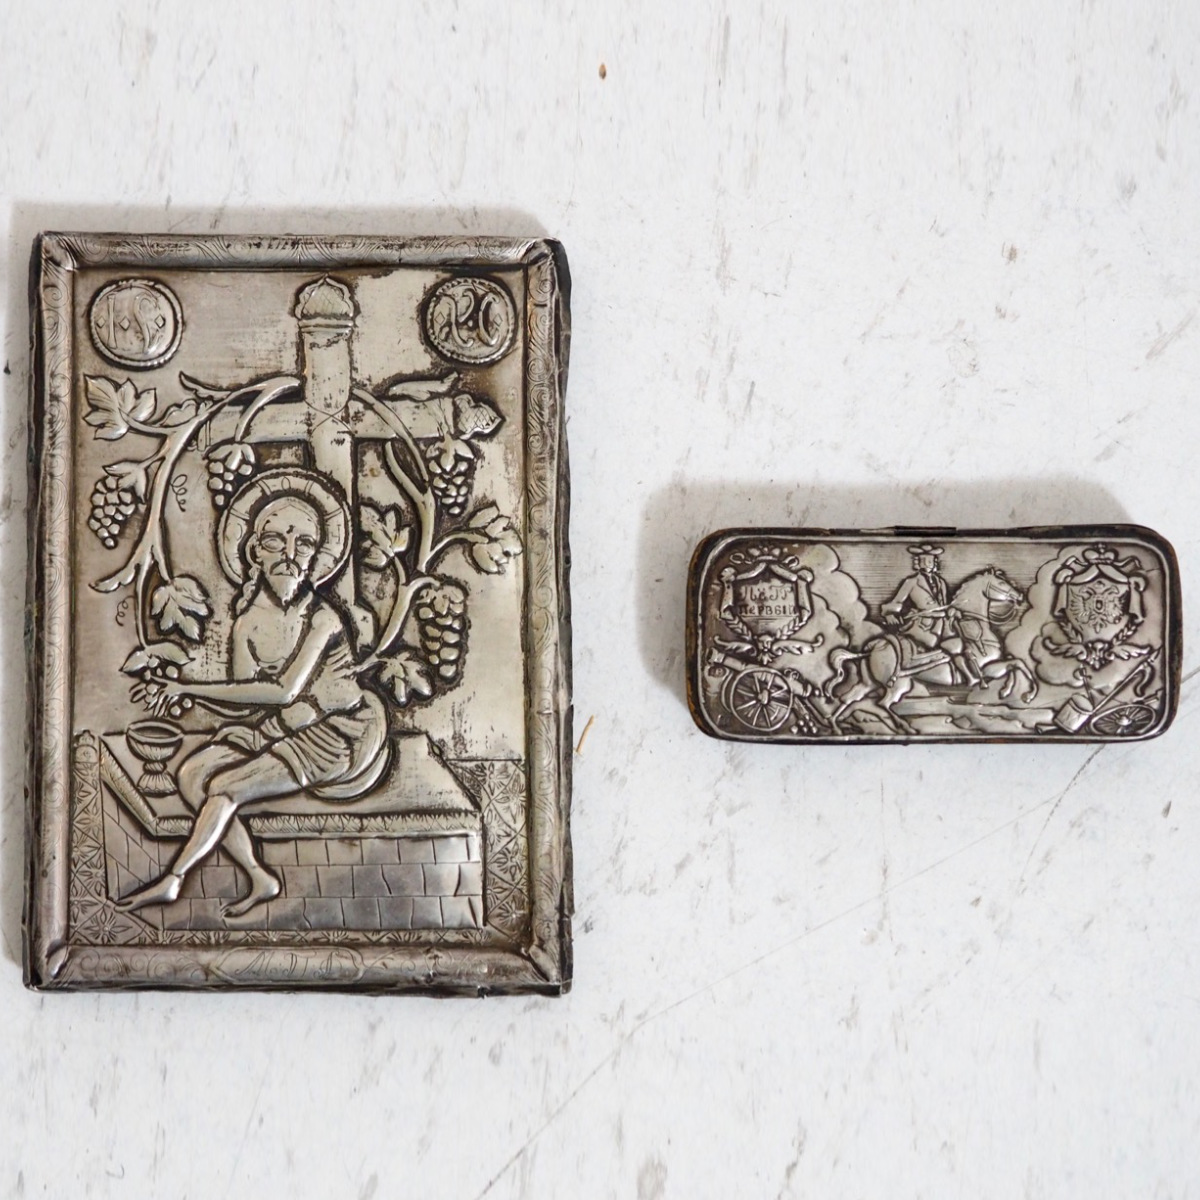 Russian silver Icon, 19th C. - € 2.000